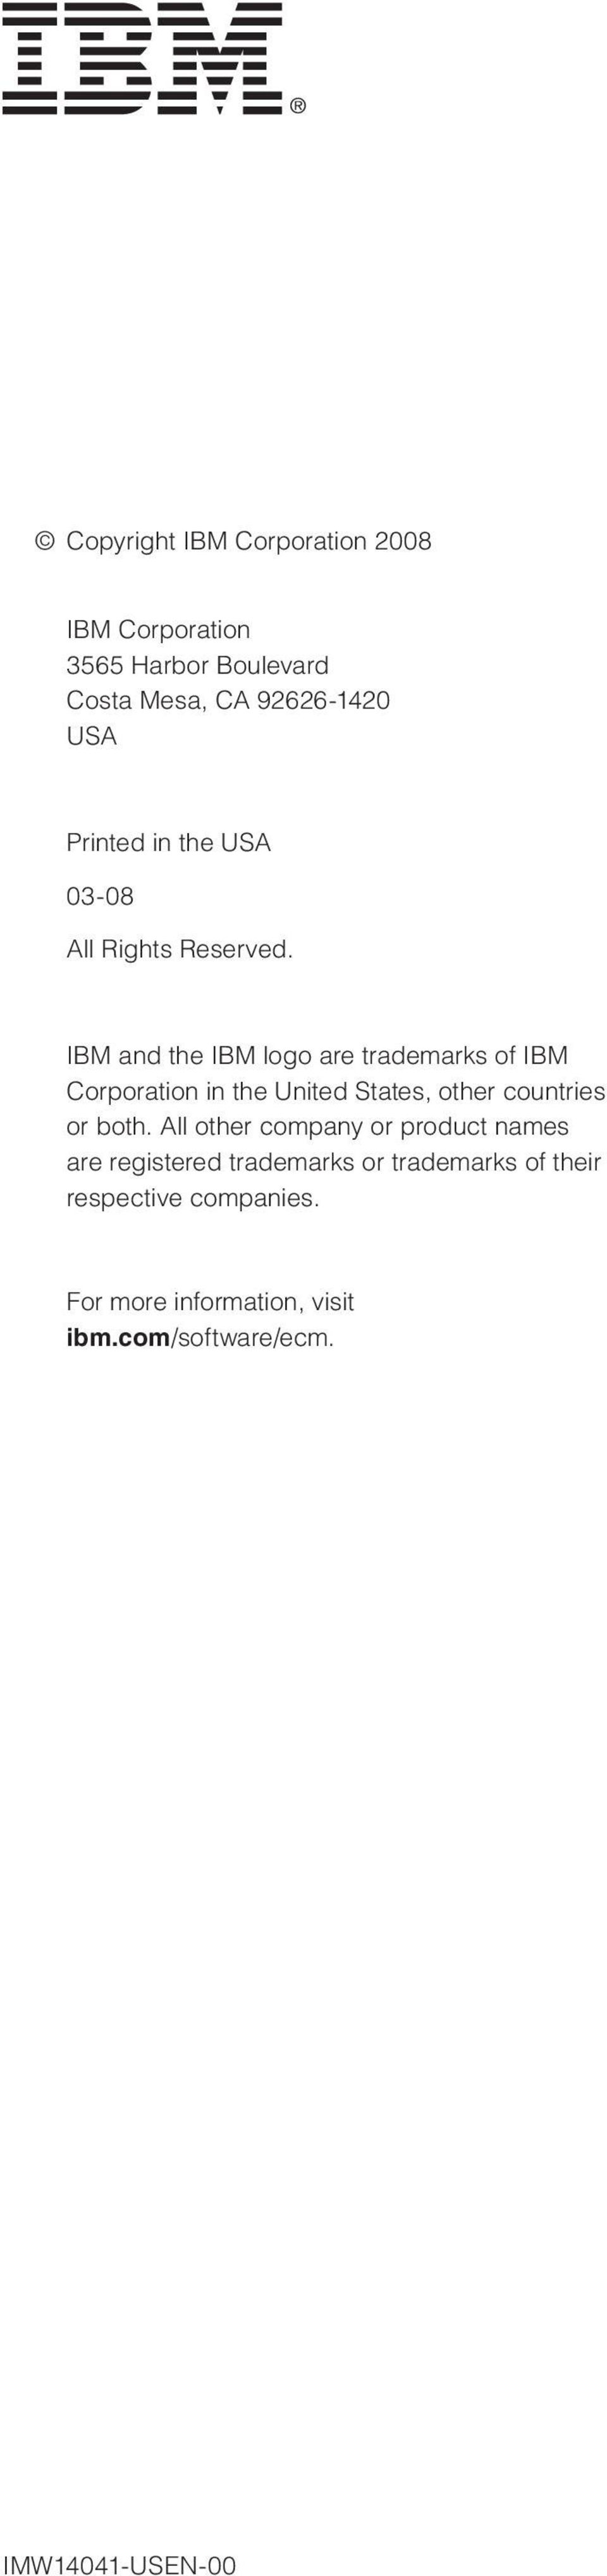 IBM and the IBM logo are trademarks of IBM Corporation in the United States, other countries or both.